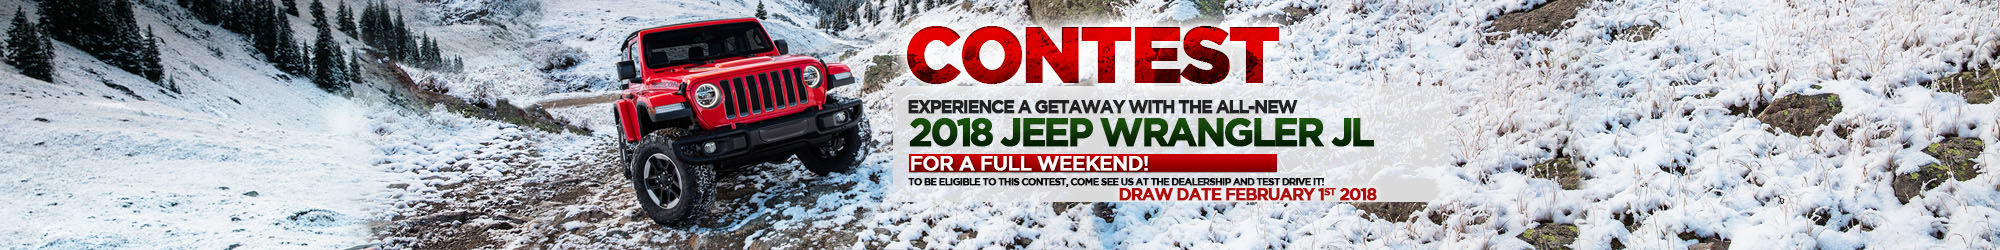 Experience a getaway in 2018 JEEP